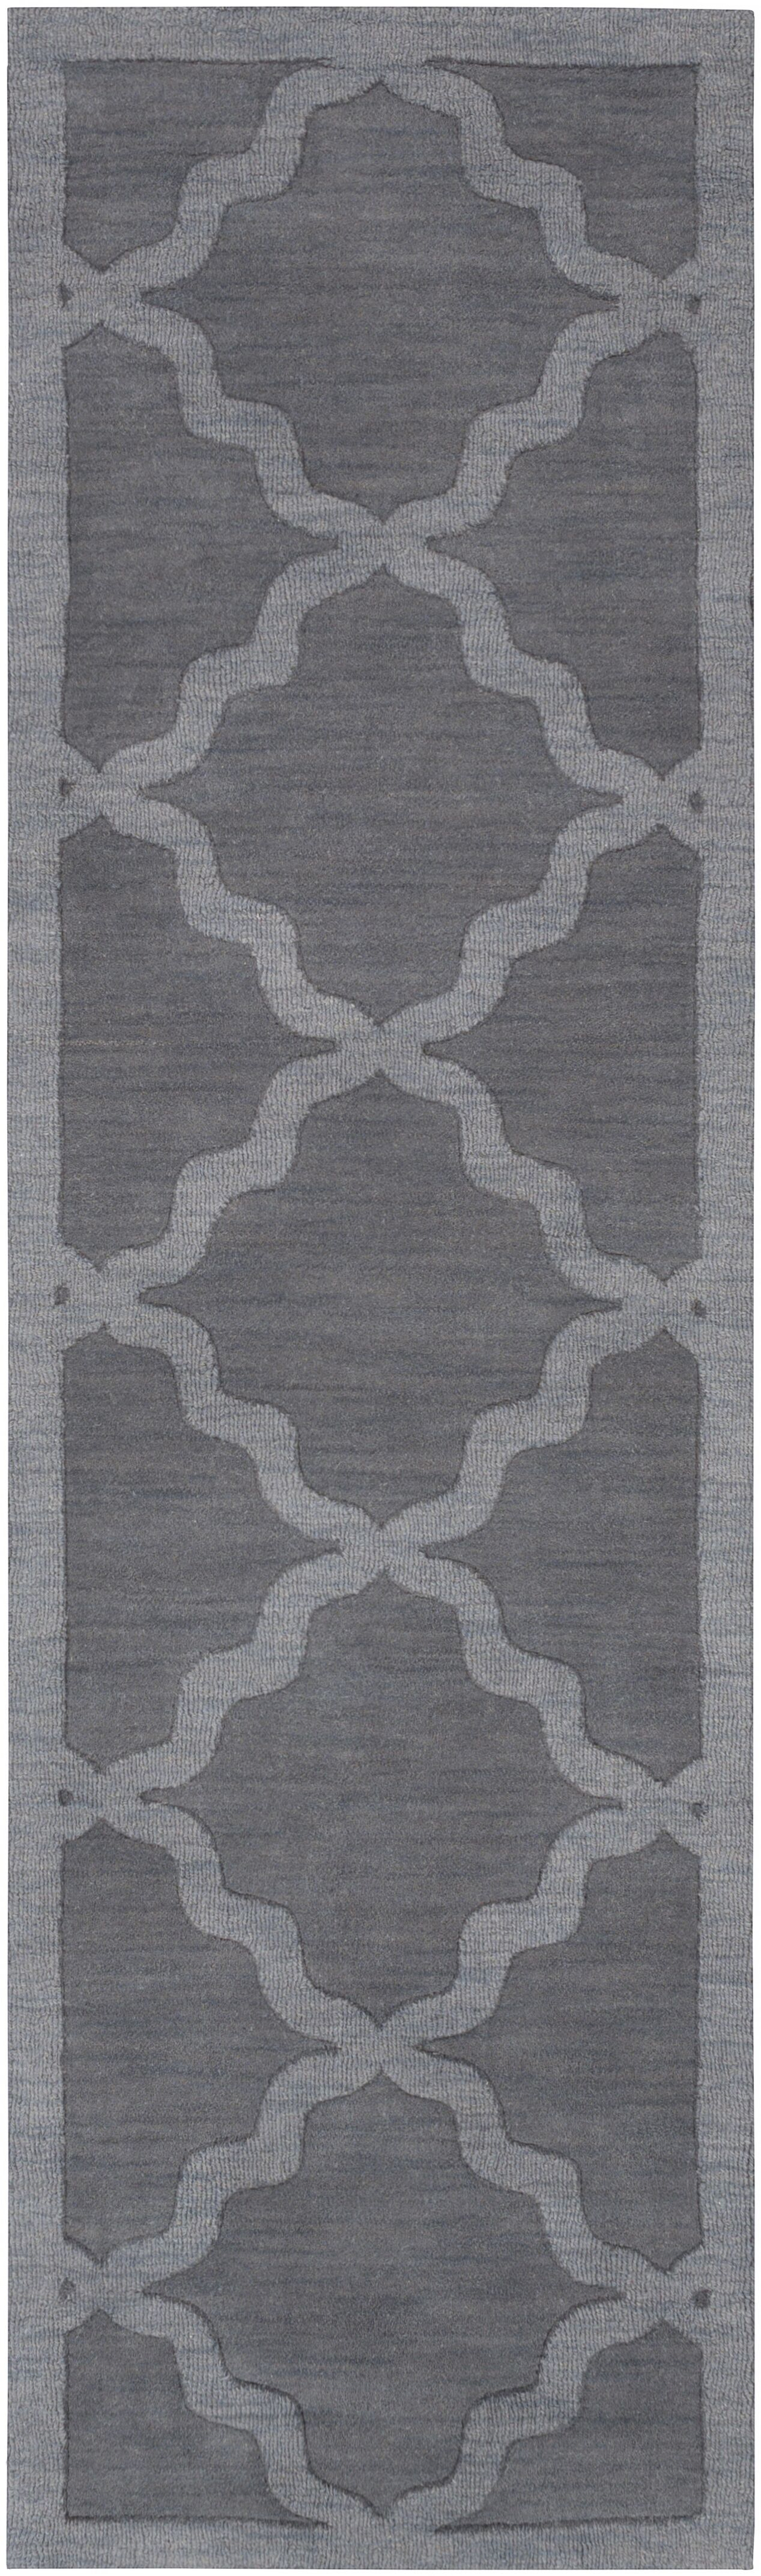 Blankenship Hand-Woven Charcoal Area Rug Rug Size: Runner 2'3